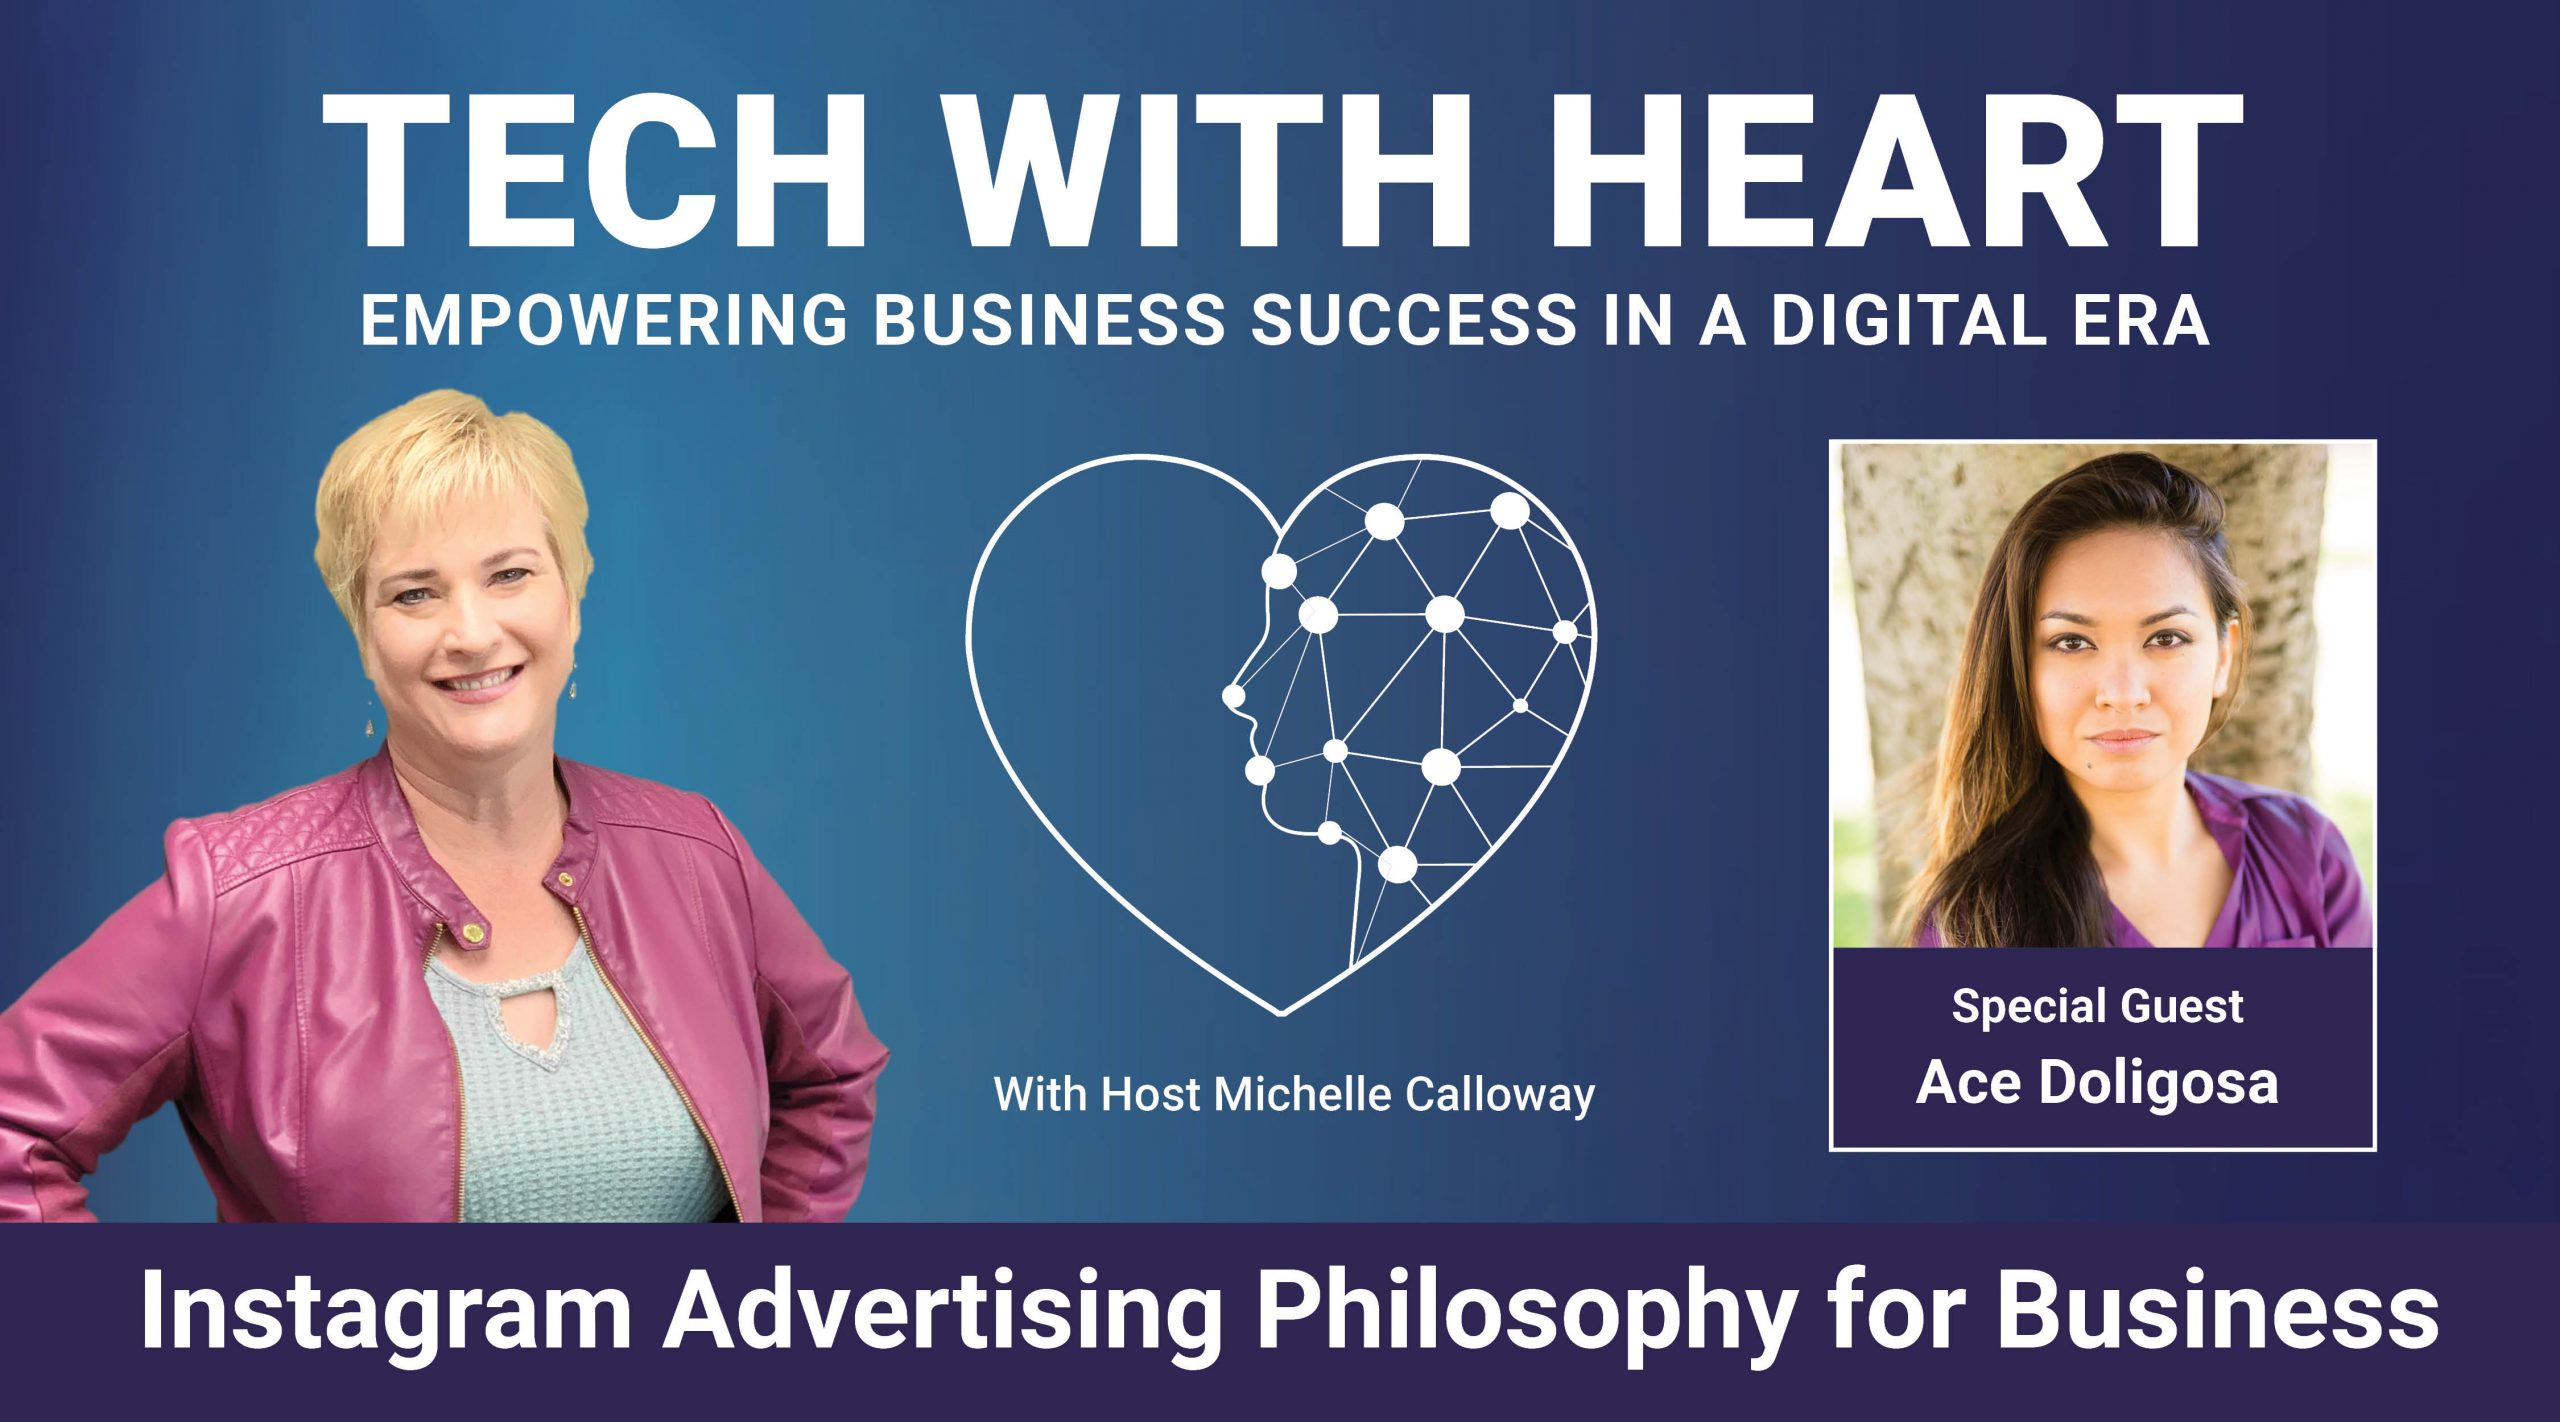 Instagram Advertising Philosophy for Business - Tech With Heart Interview With Ace Doligosa